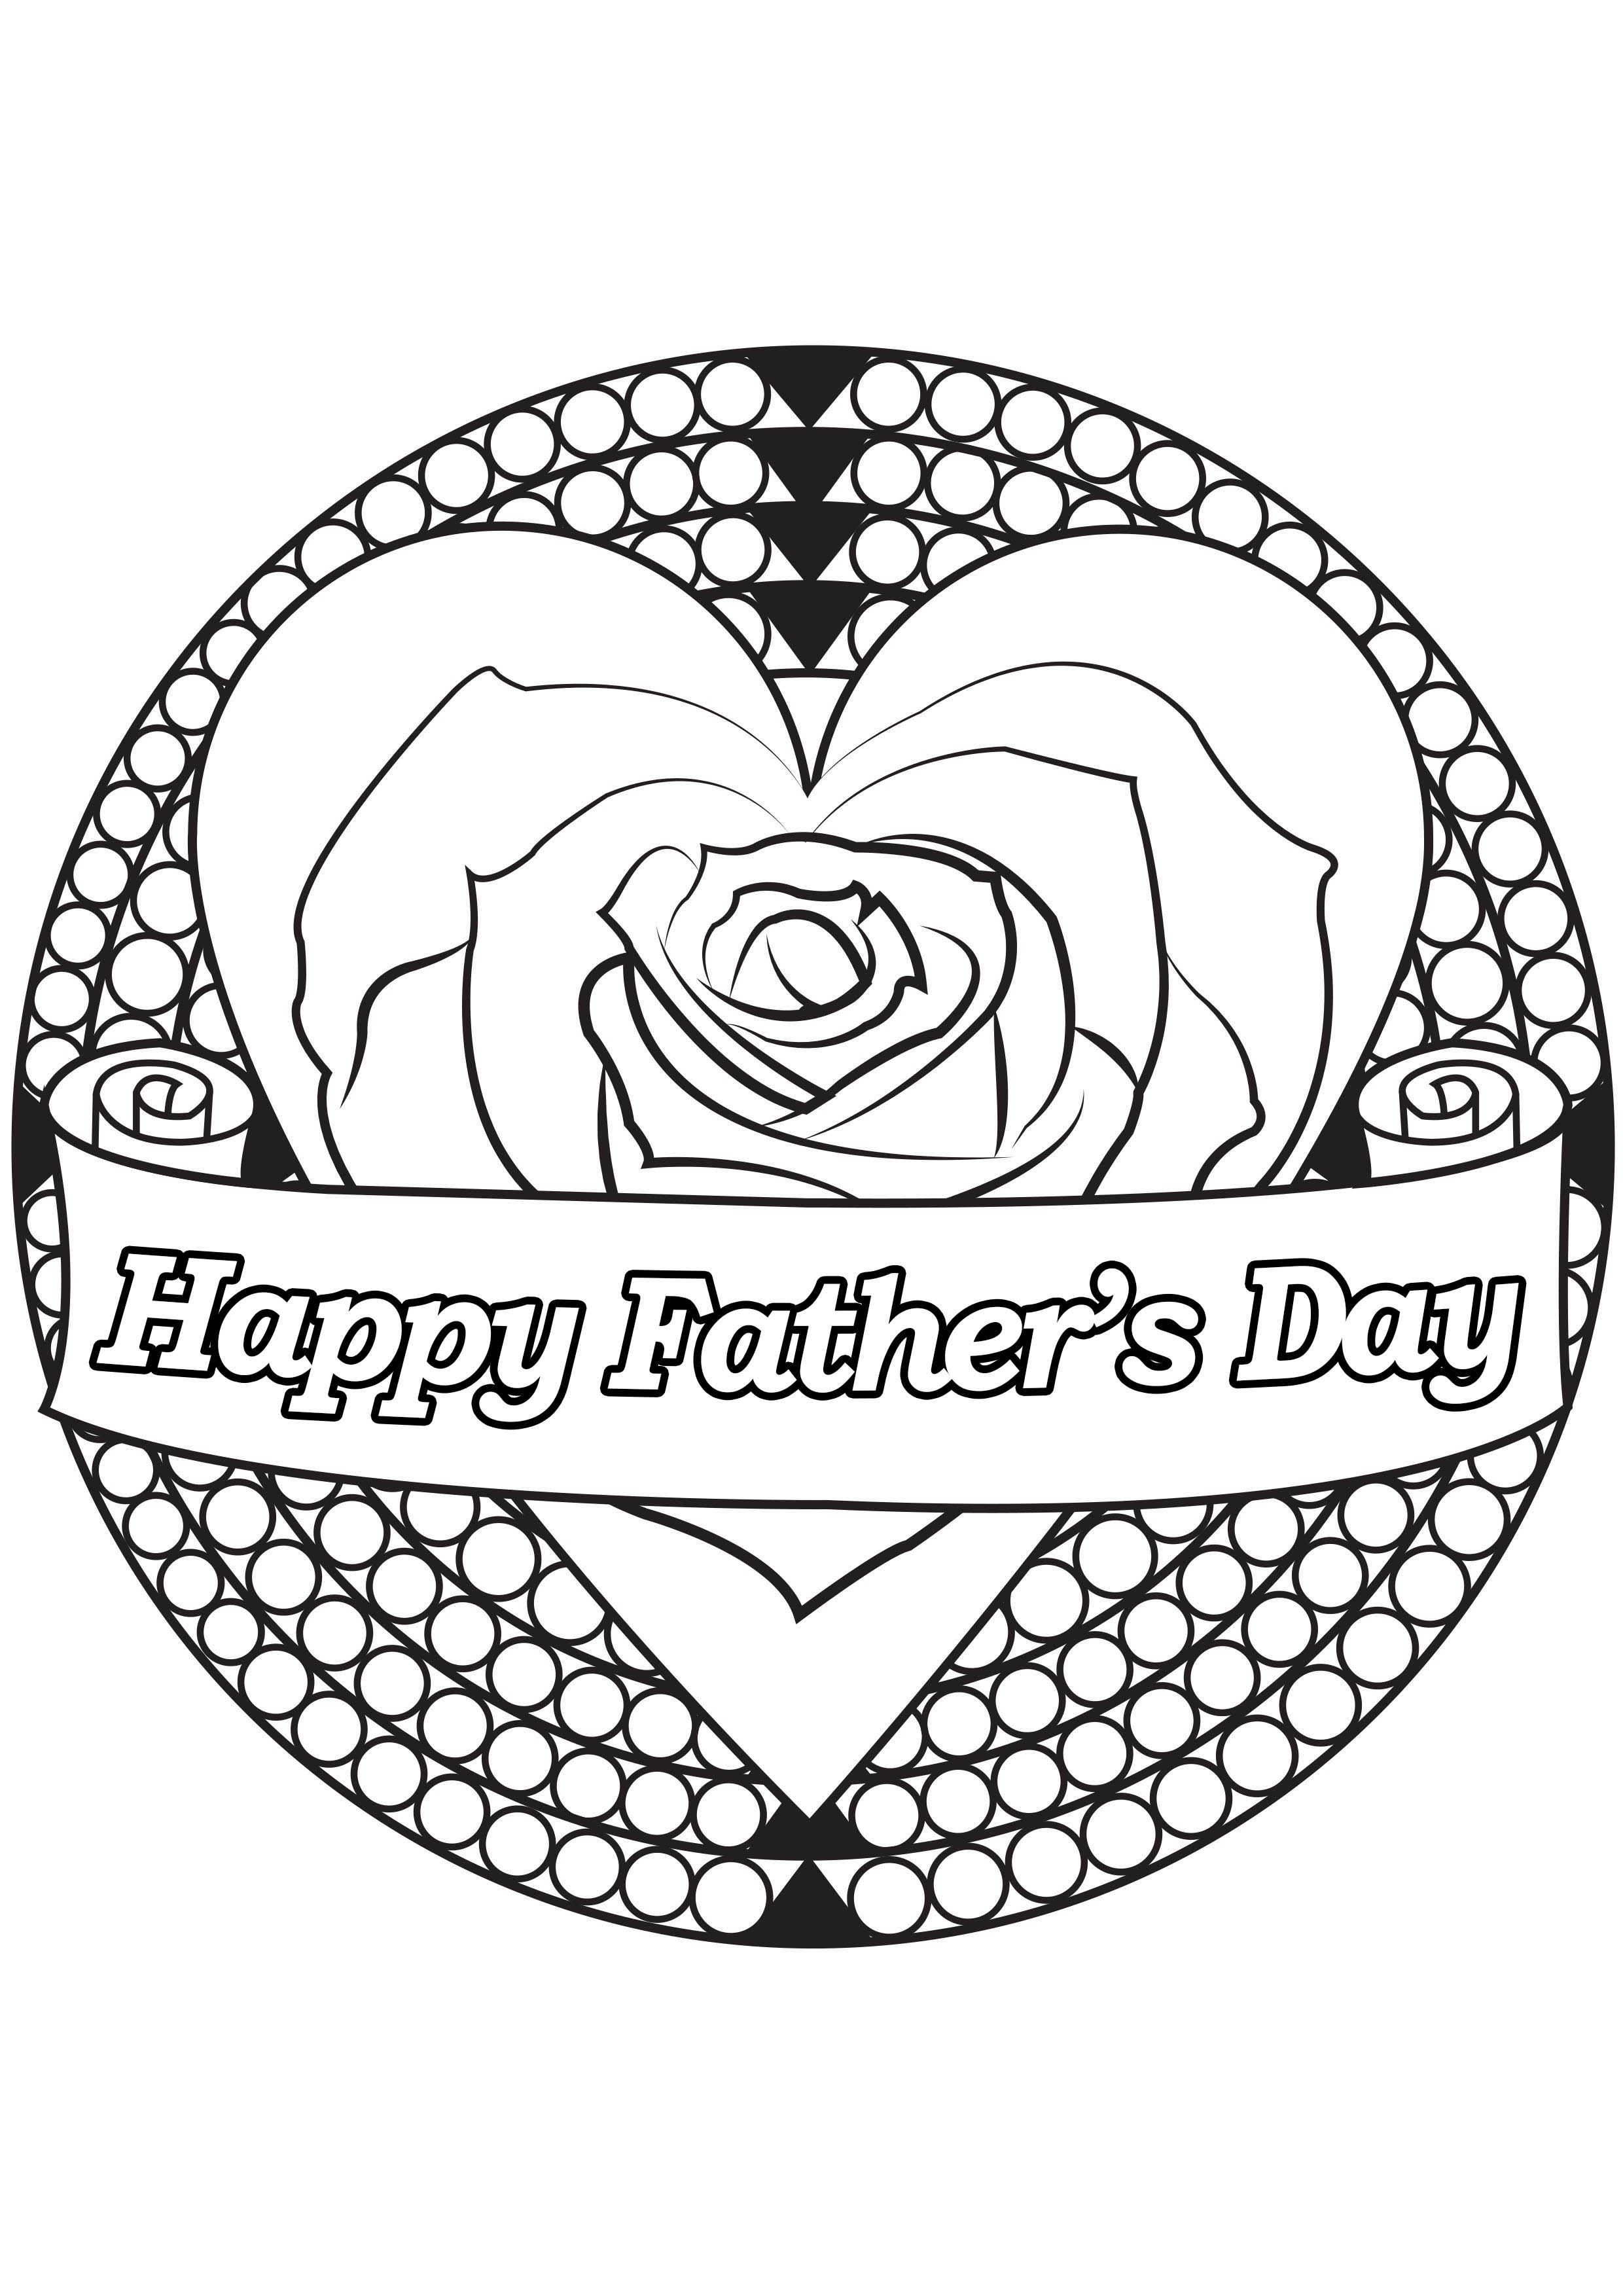 Father S Day Coloring Page Heart Valentine Coloring Pages Fathers Day Coloring Page Mothers Day Coloring Pages